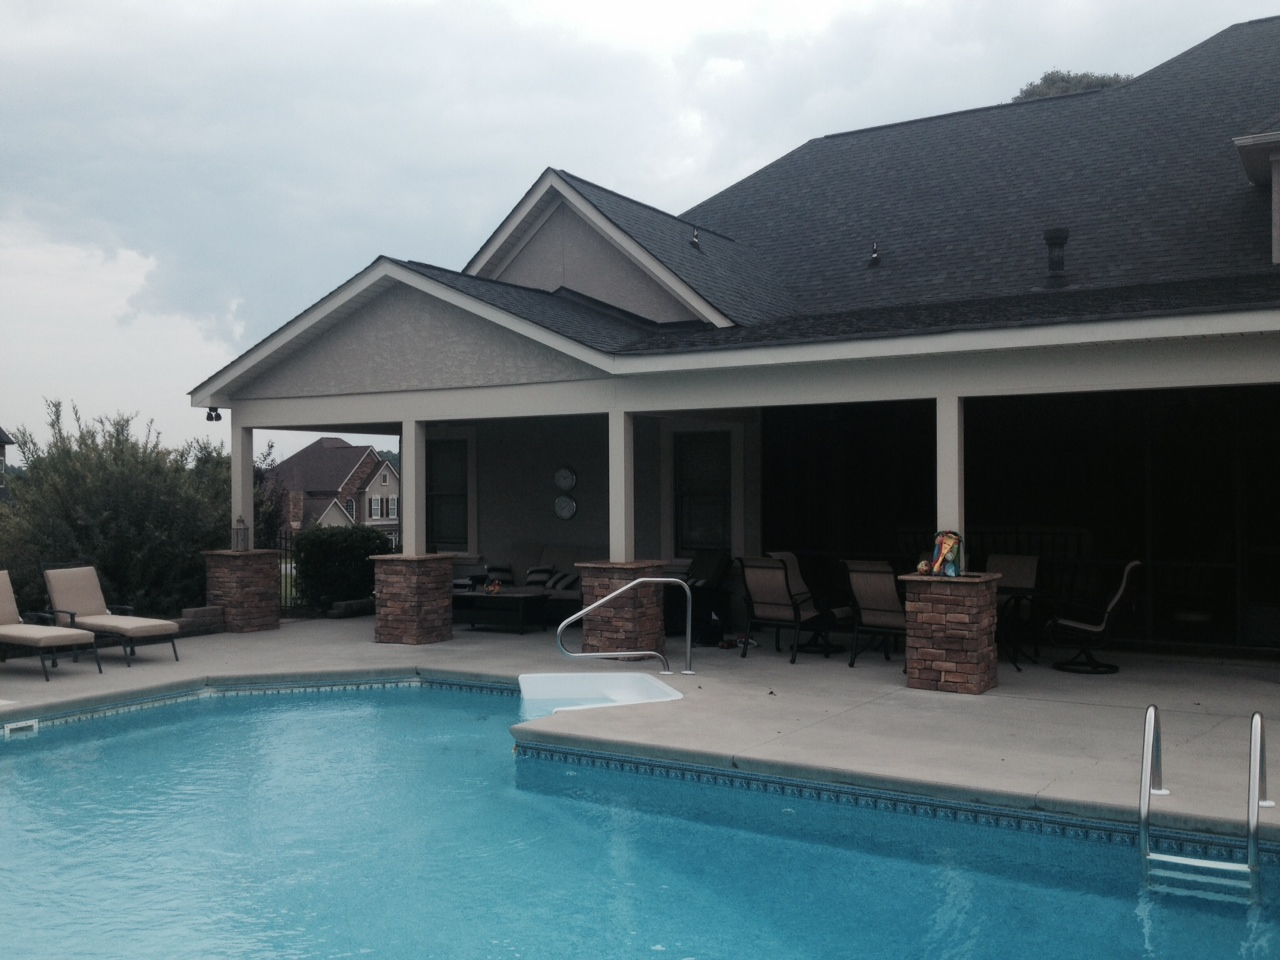 Designing a custom pool house or pool cabana? What should be ...